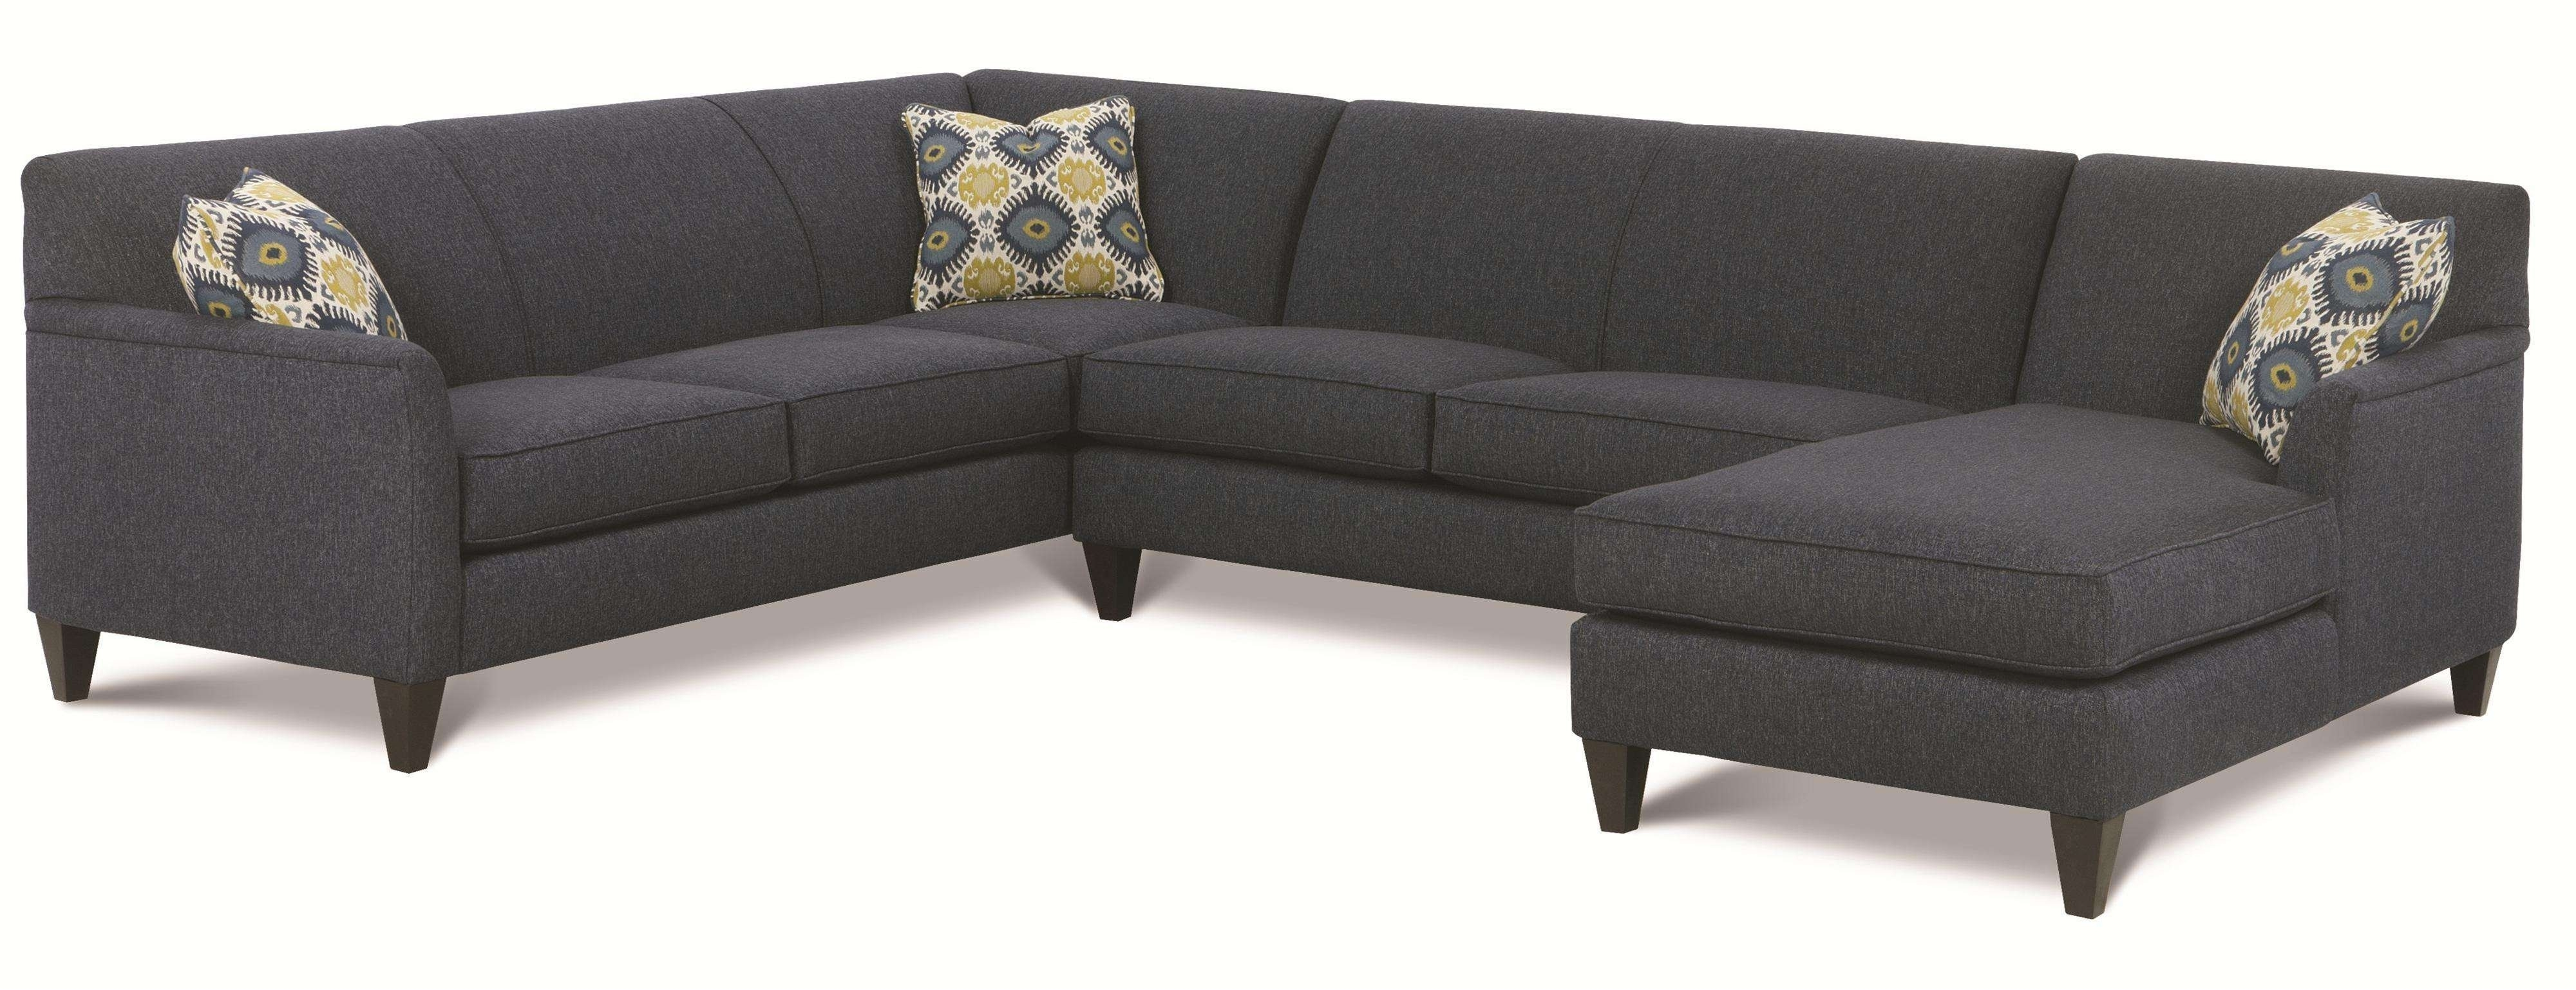 Simple 25 2 Piece Sectionals With Chaise Awesome | Russiandesignshow Inside Cosmos Grey 2 Piece Sectionals With Laf Chaise (Image 20 of 25)